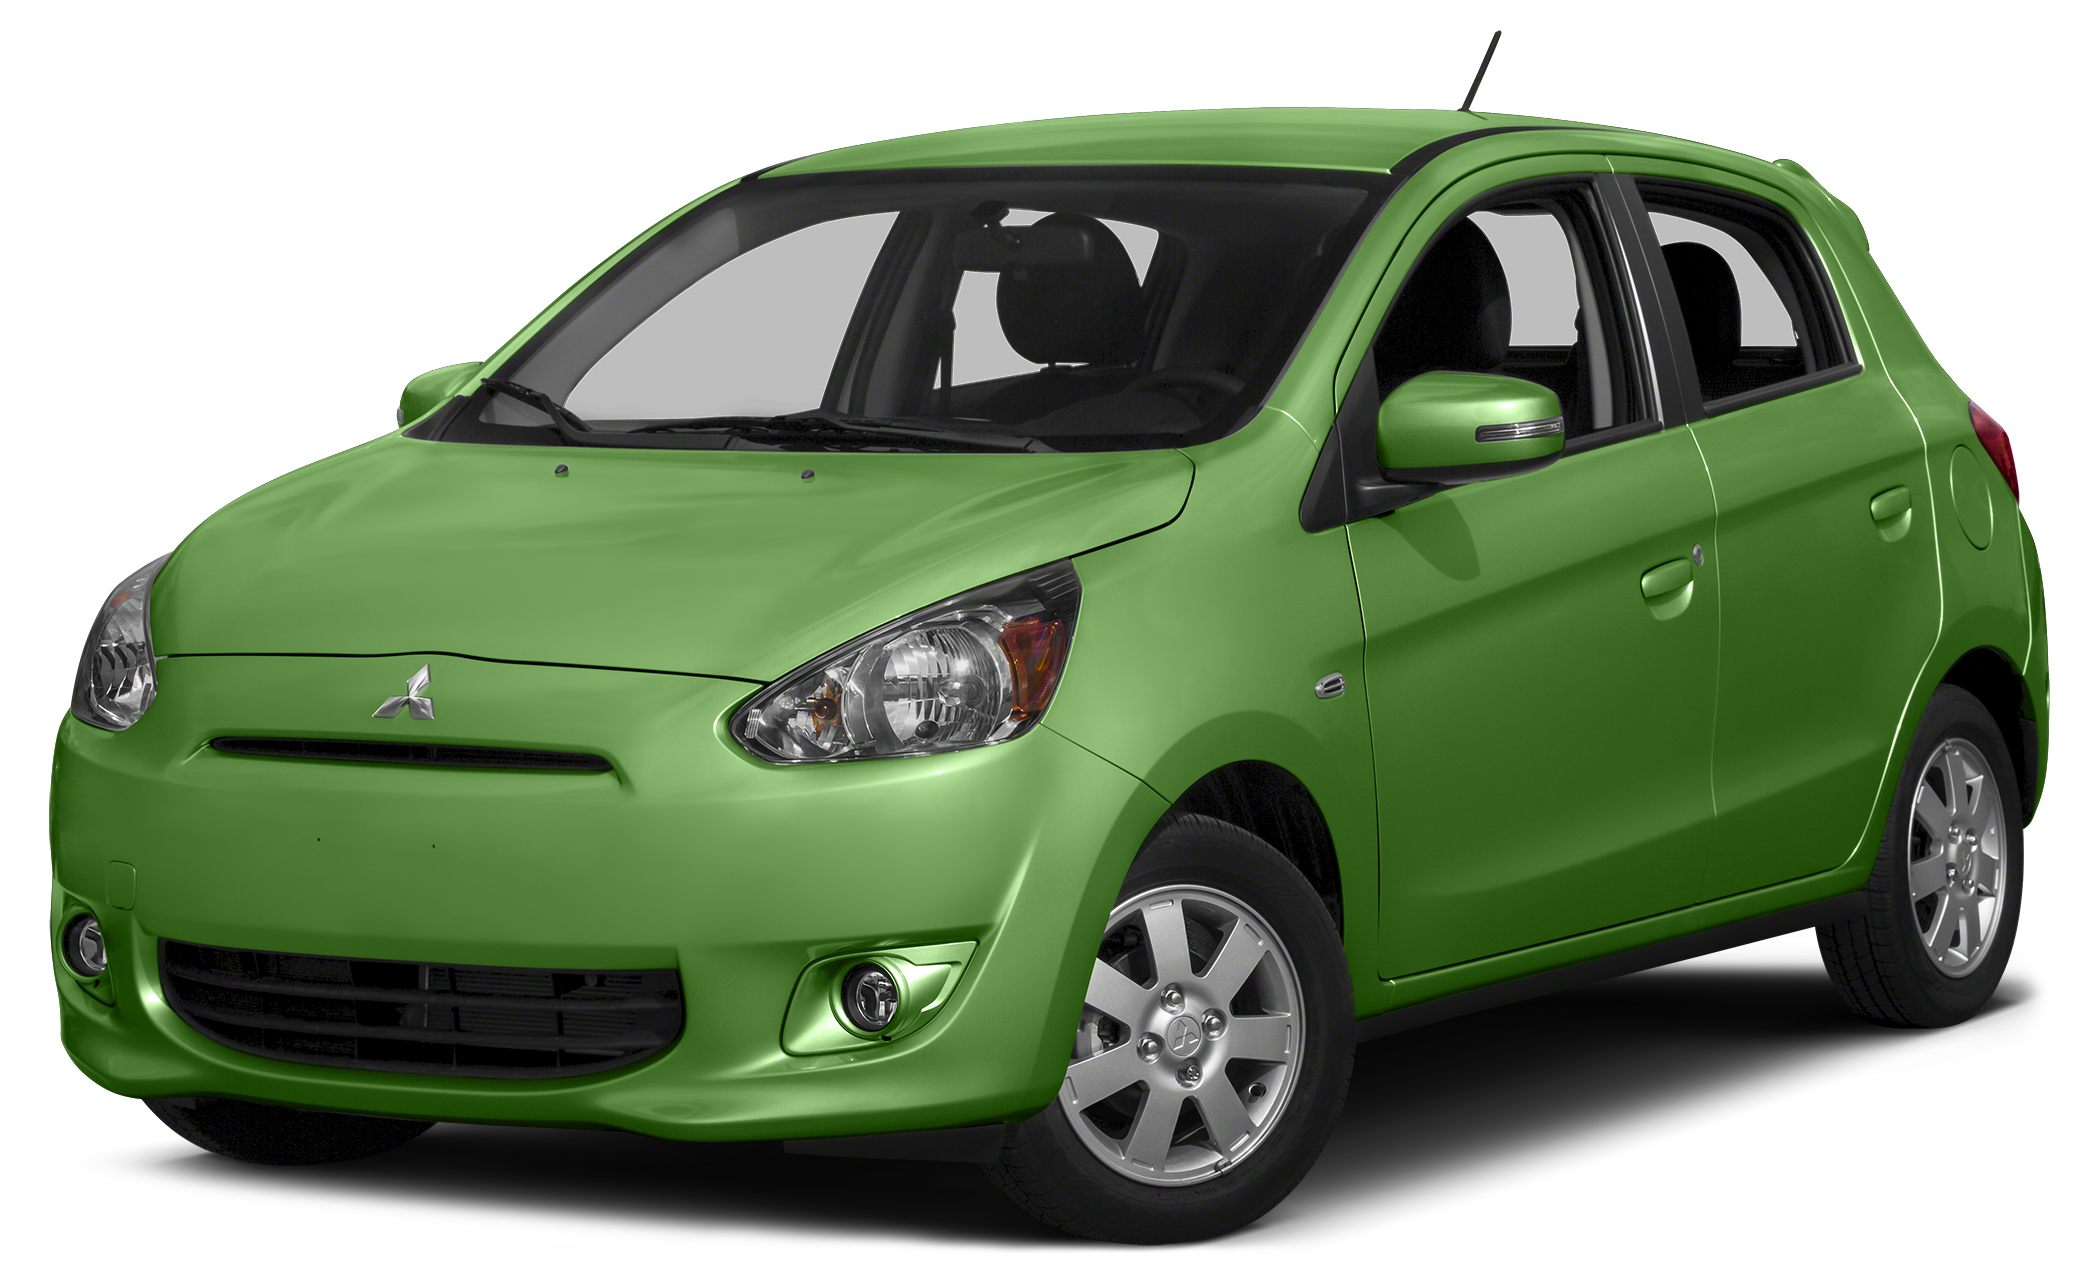 2015 Mitsubishi Mirage DE SUPER CLEAN ONE OWNER HATCHBACK MULLINAX CERTIFIED PRE-OWNED means yo